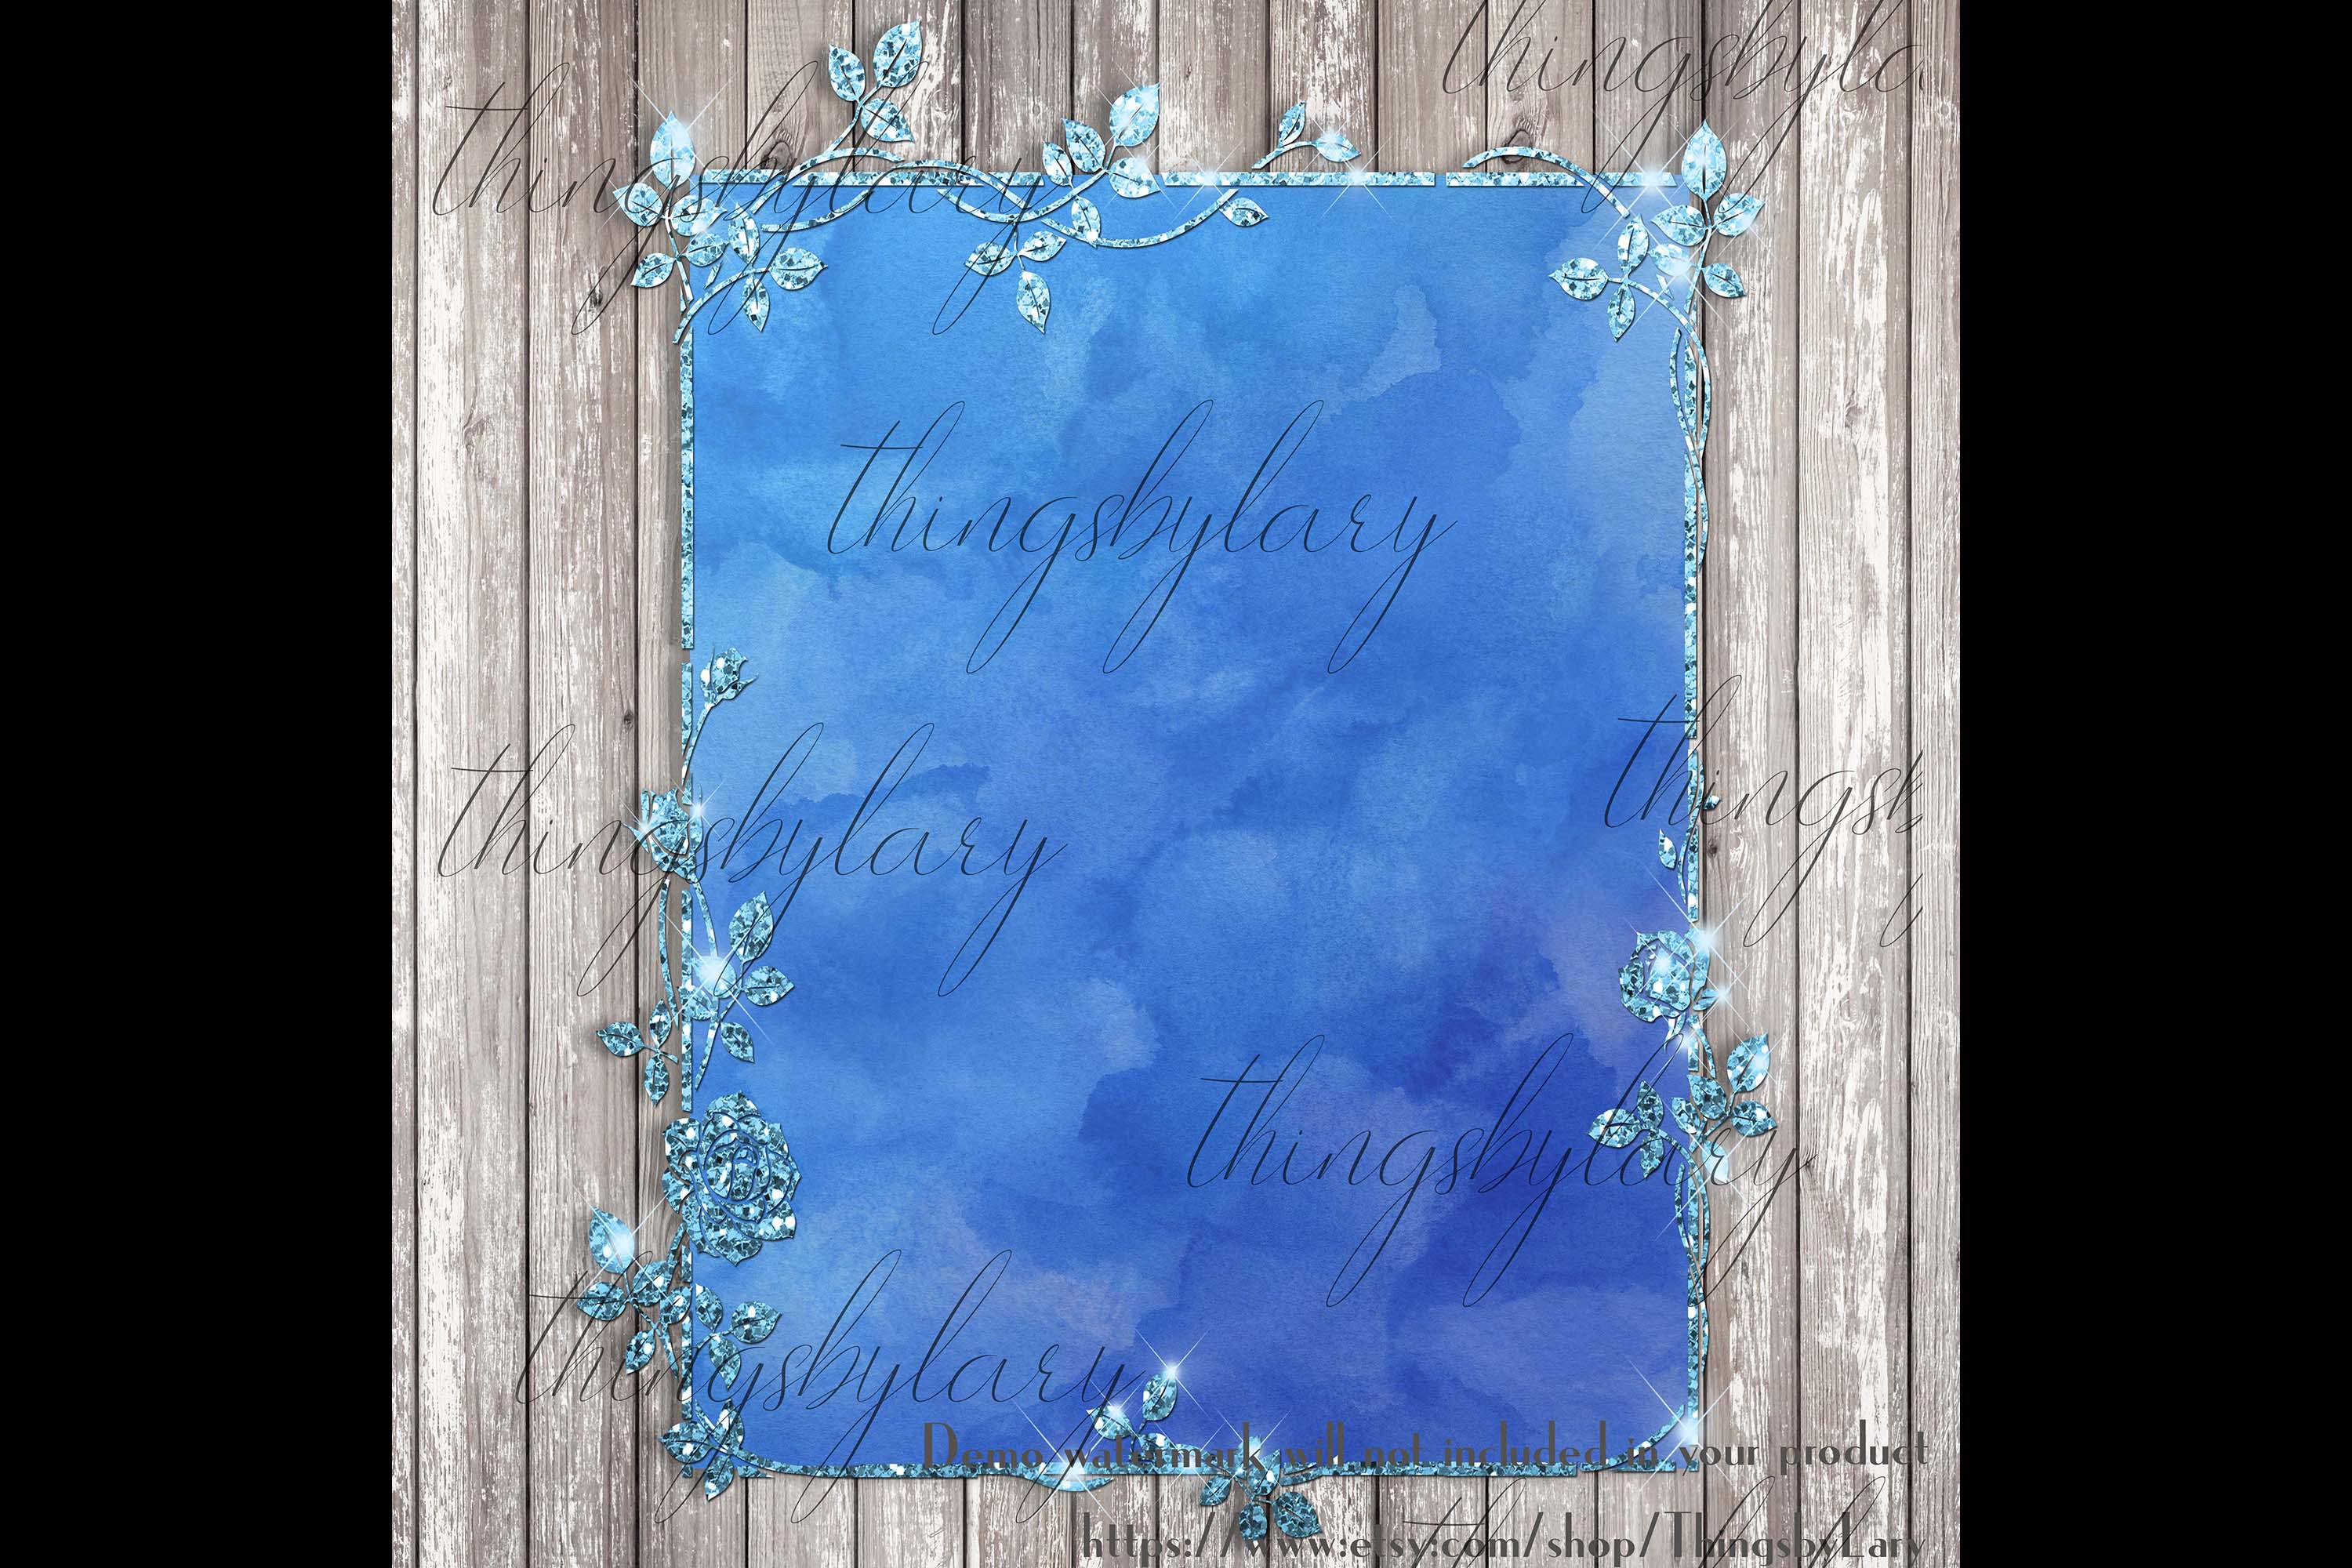 18 Glitter and Watercolor Leaf Branch Floral Frame Card example image 7